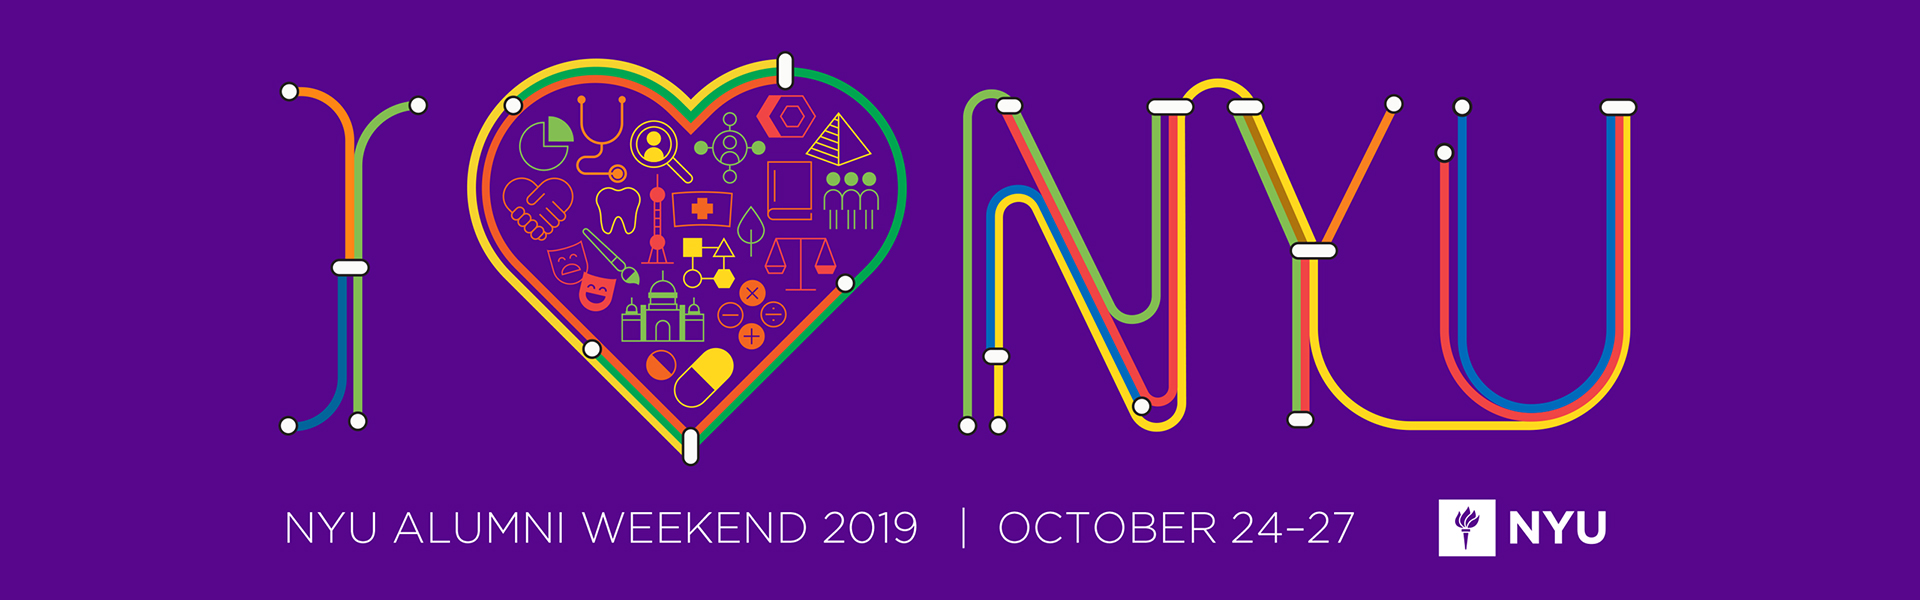 NYU Alumni Weekend 2019